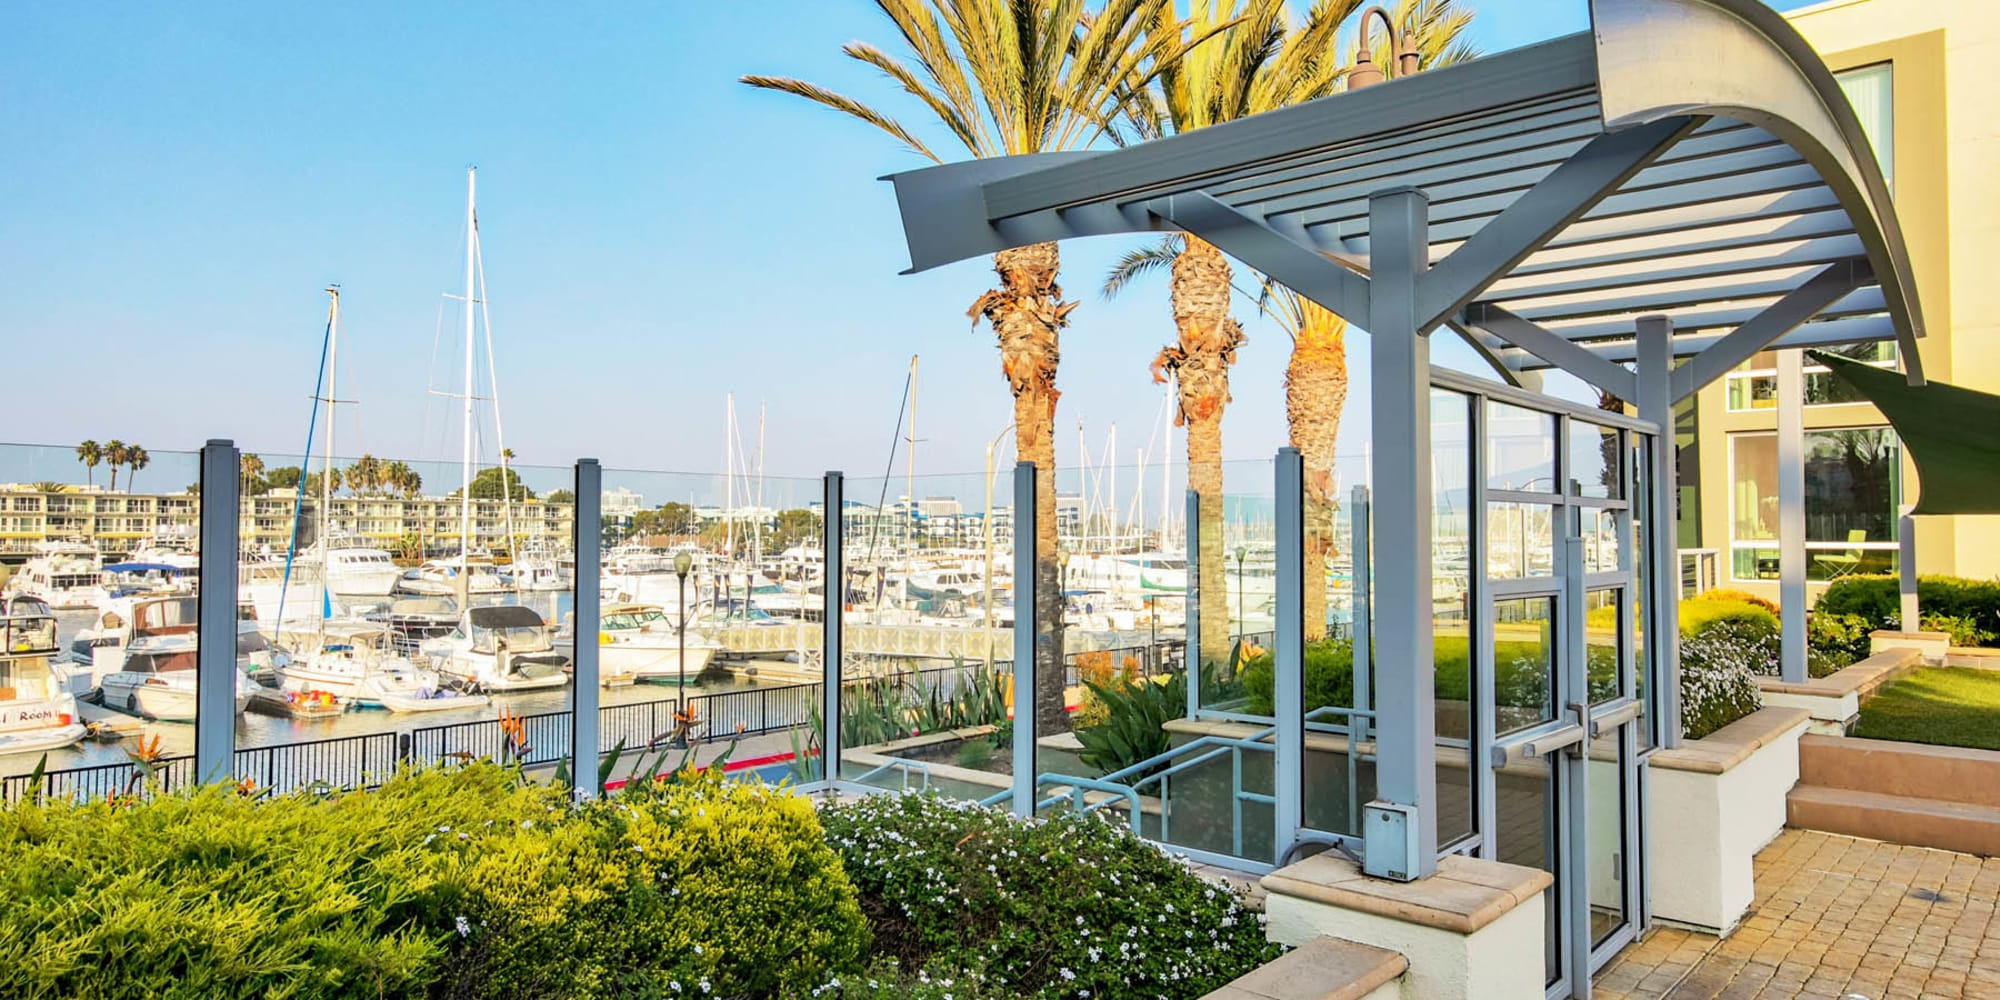 Terrific views of the harbor from our waterside community at Waters Edge at Marina Harbor in Marina Del Rey, California